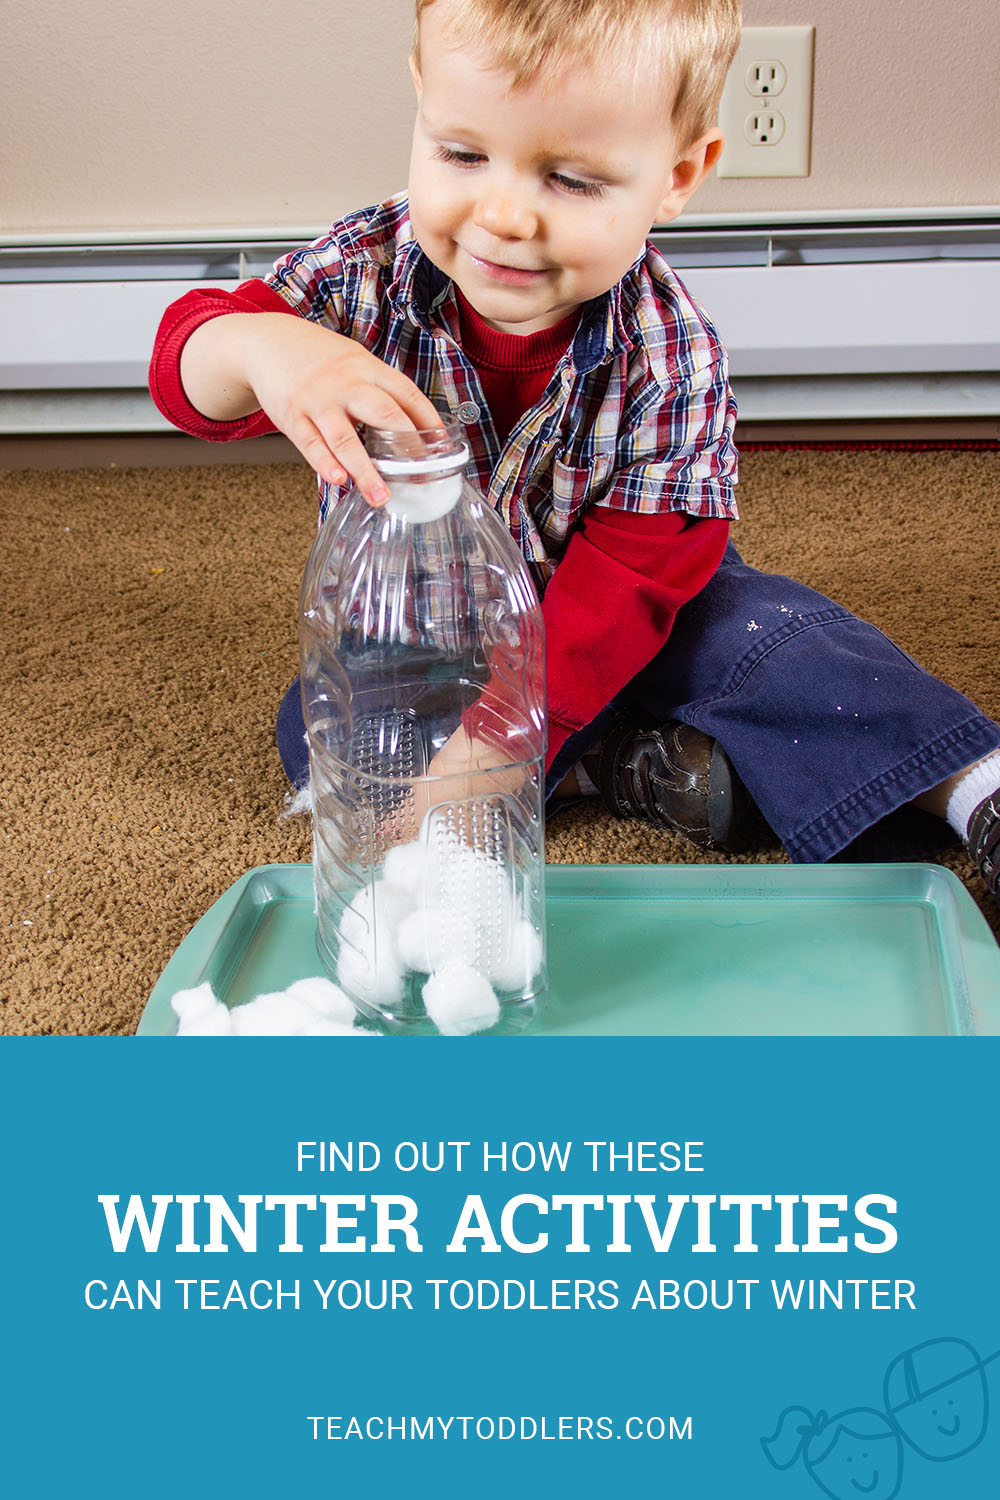 Find out how these winter activities can teach your toddlers about winter